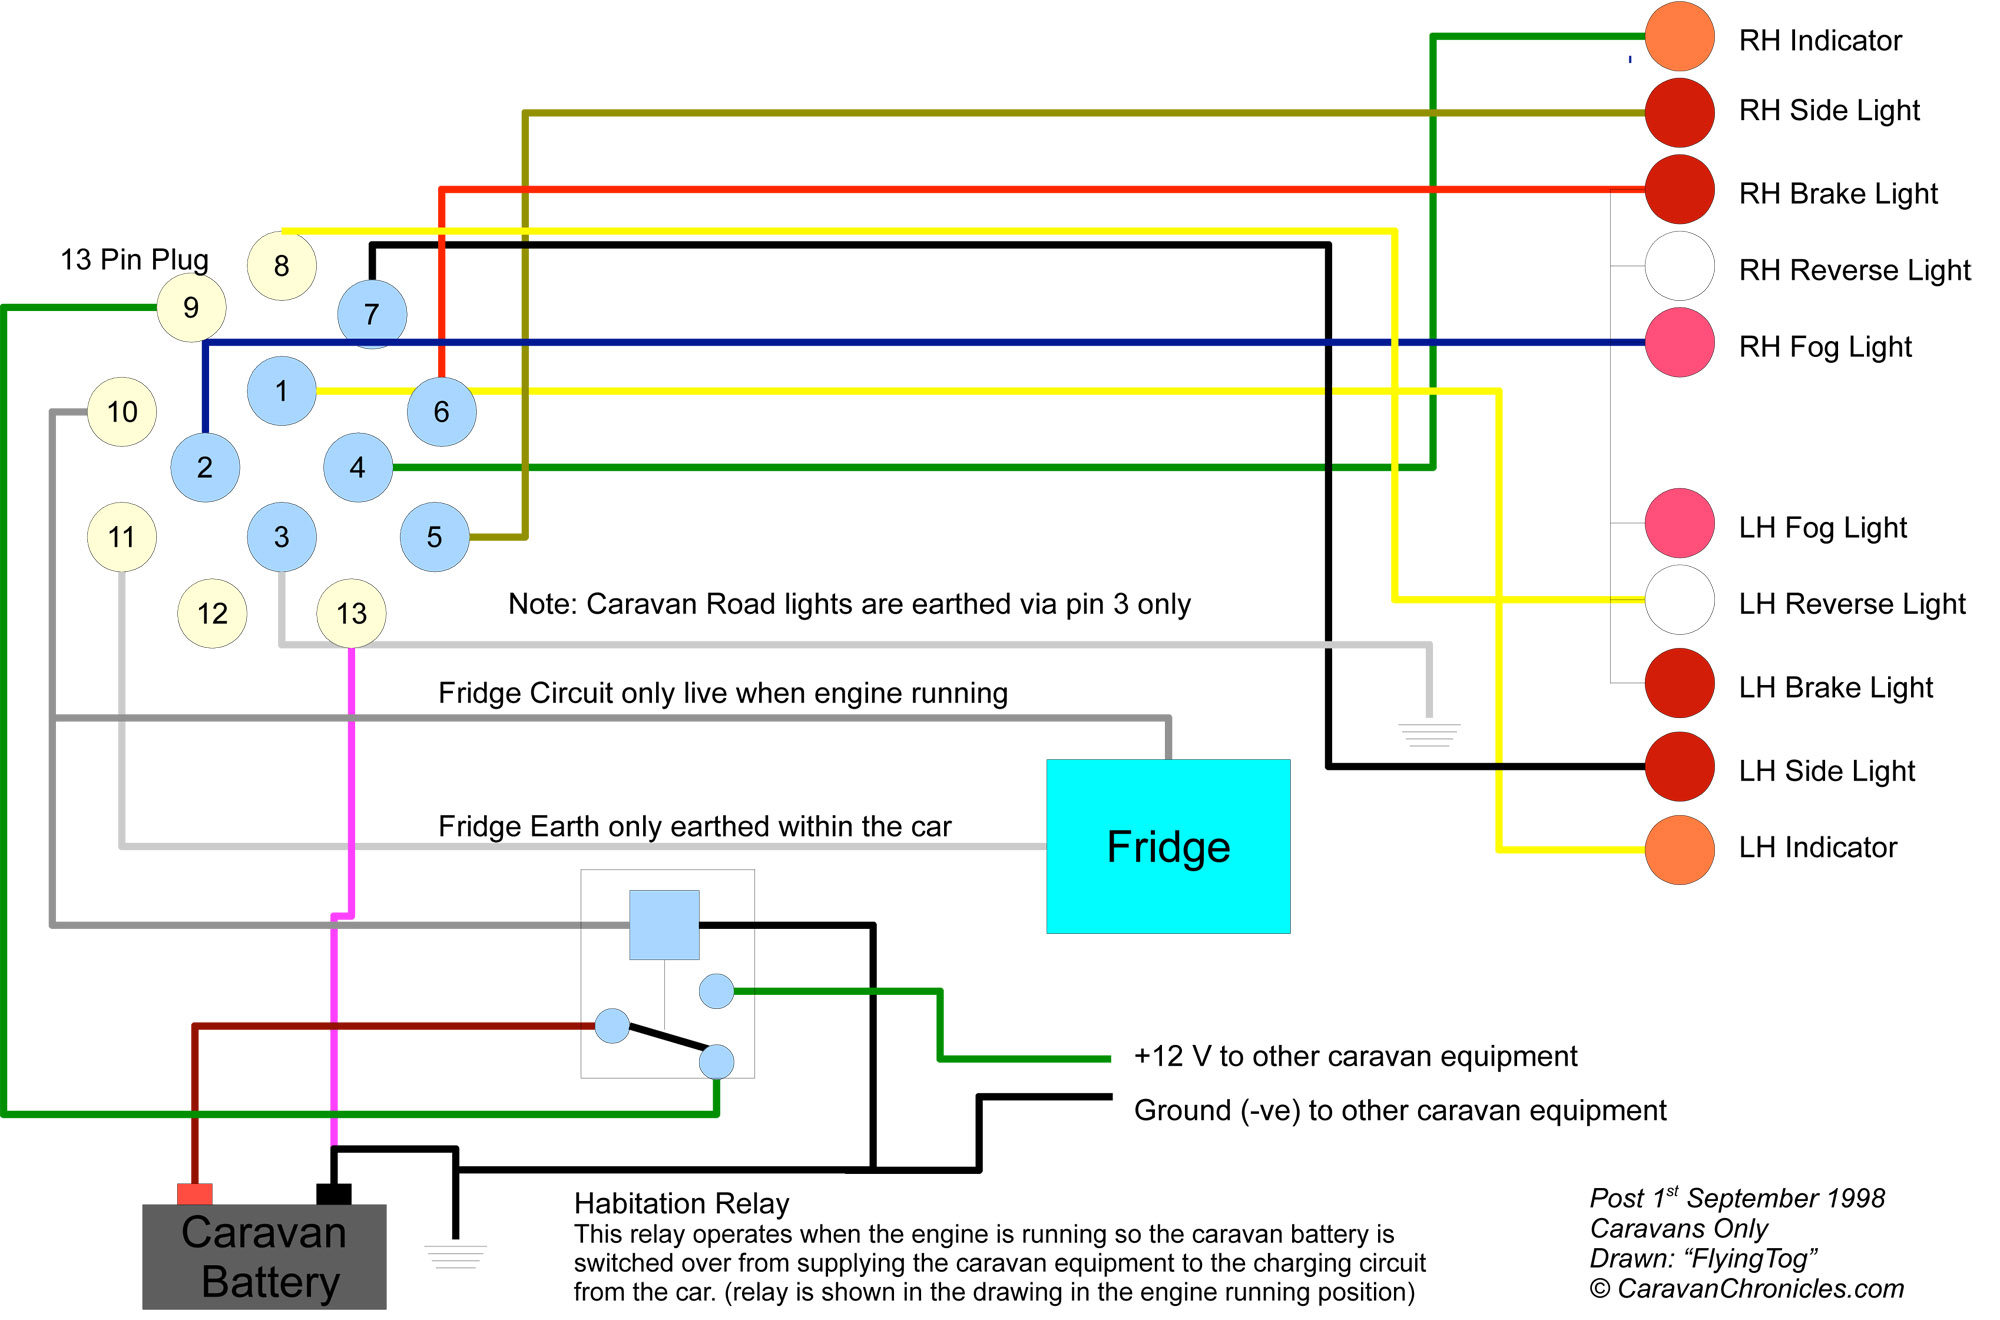 Towbar Wiring Instructions Pdf - Great Installation Of Wiring Diagram on